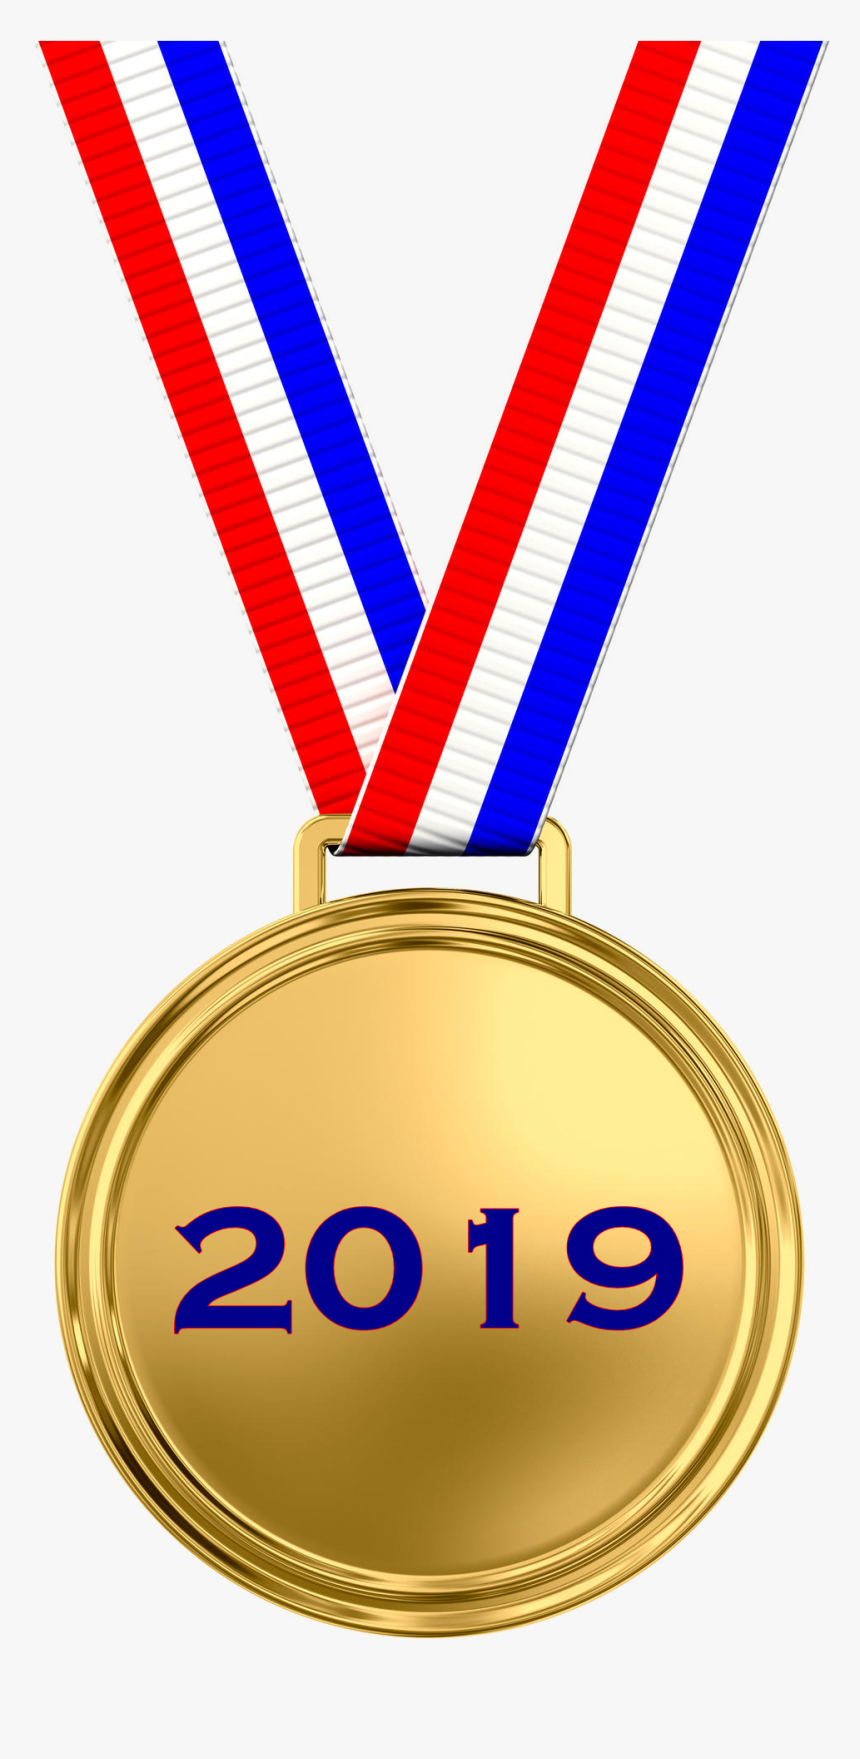 Gold Medal Png Image File - Medal For Putting Up With Me, Transparent Png, Free Download